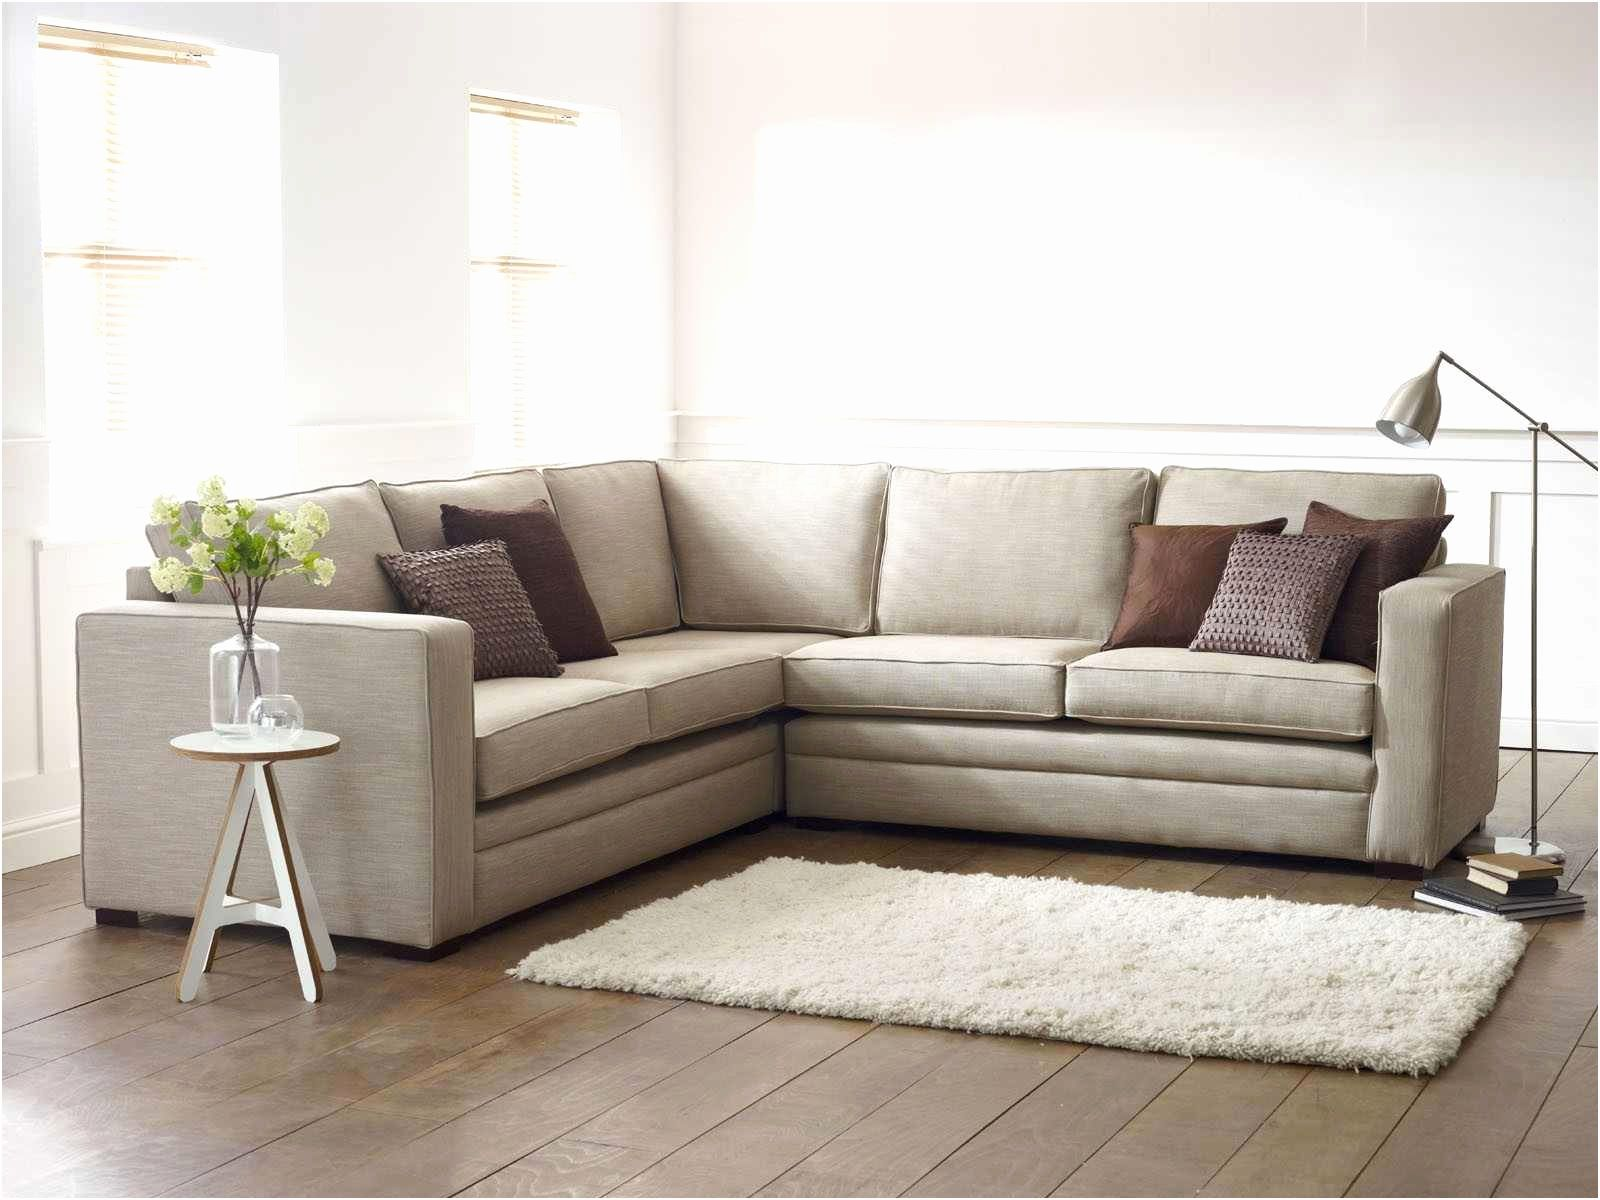 Amazing Large Modern Sectional Sofas Images 80 Creative Elegant Contemporary Reclining Sofa Leather Electr L Shaped Sofa Bed L Shaped Couch Couches Living Room